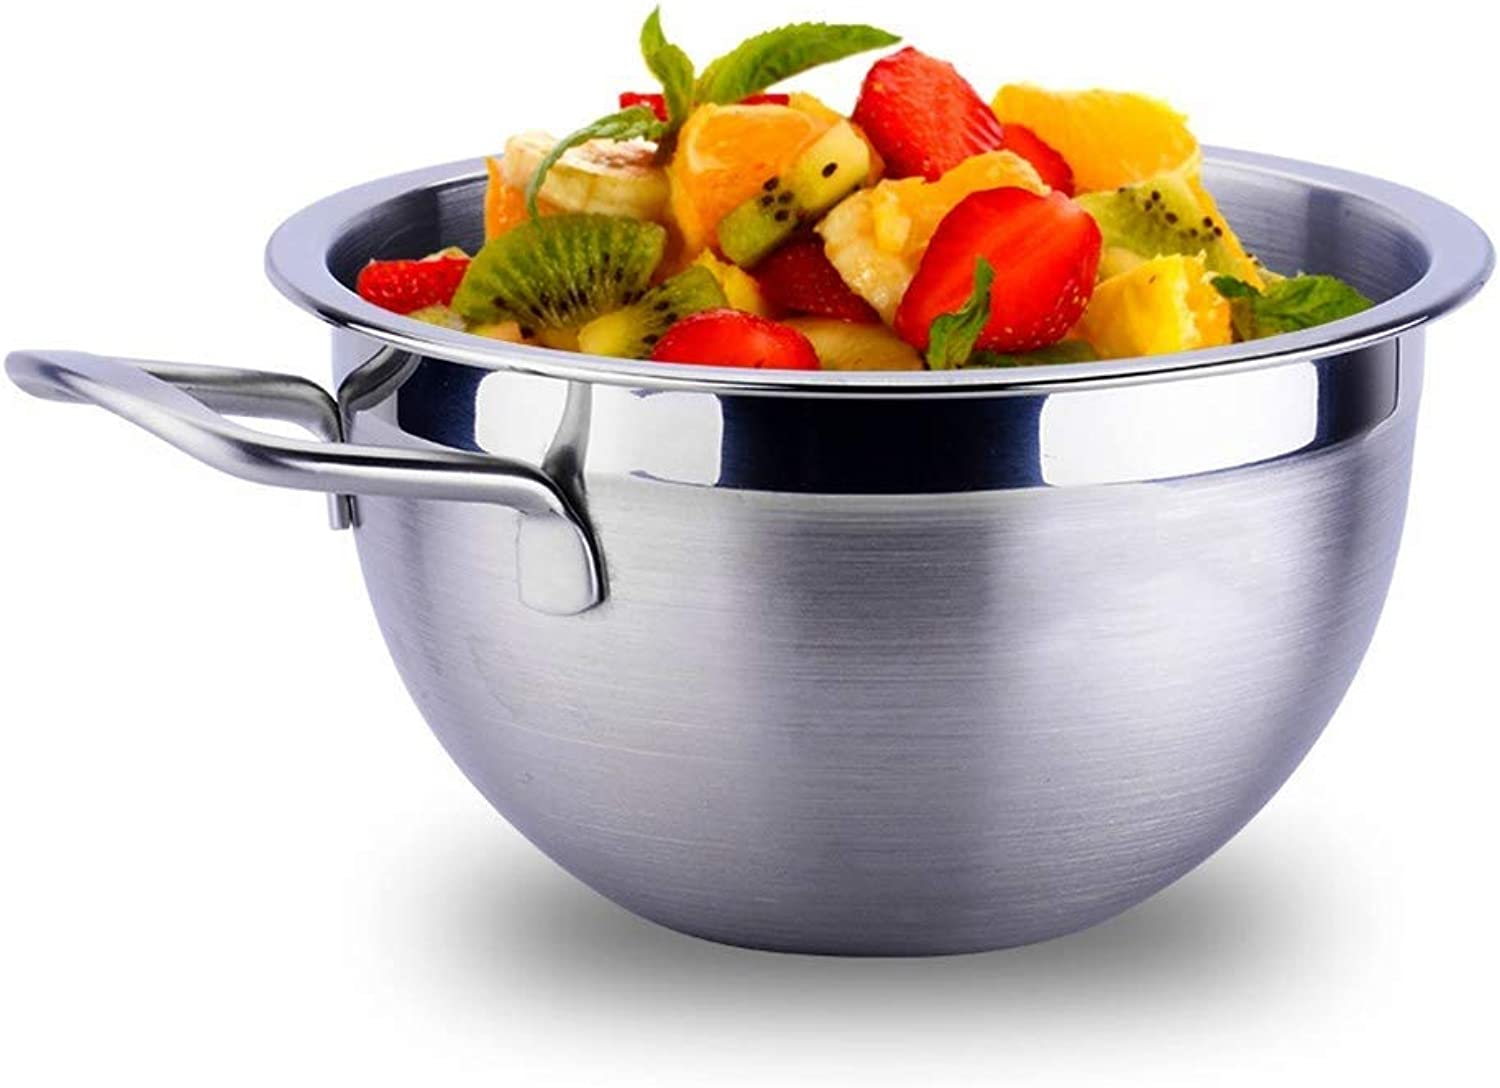 LLDDP Cooking Equipment Bowl Stainless Steel Deep Mixing Salad Bowl, Cooking Baking & Serving Bowls for Pasta, Stirring, Food Preservation, Highly Polished Technology, for Easy Grip and Pouring,Natura